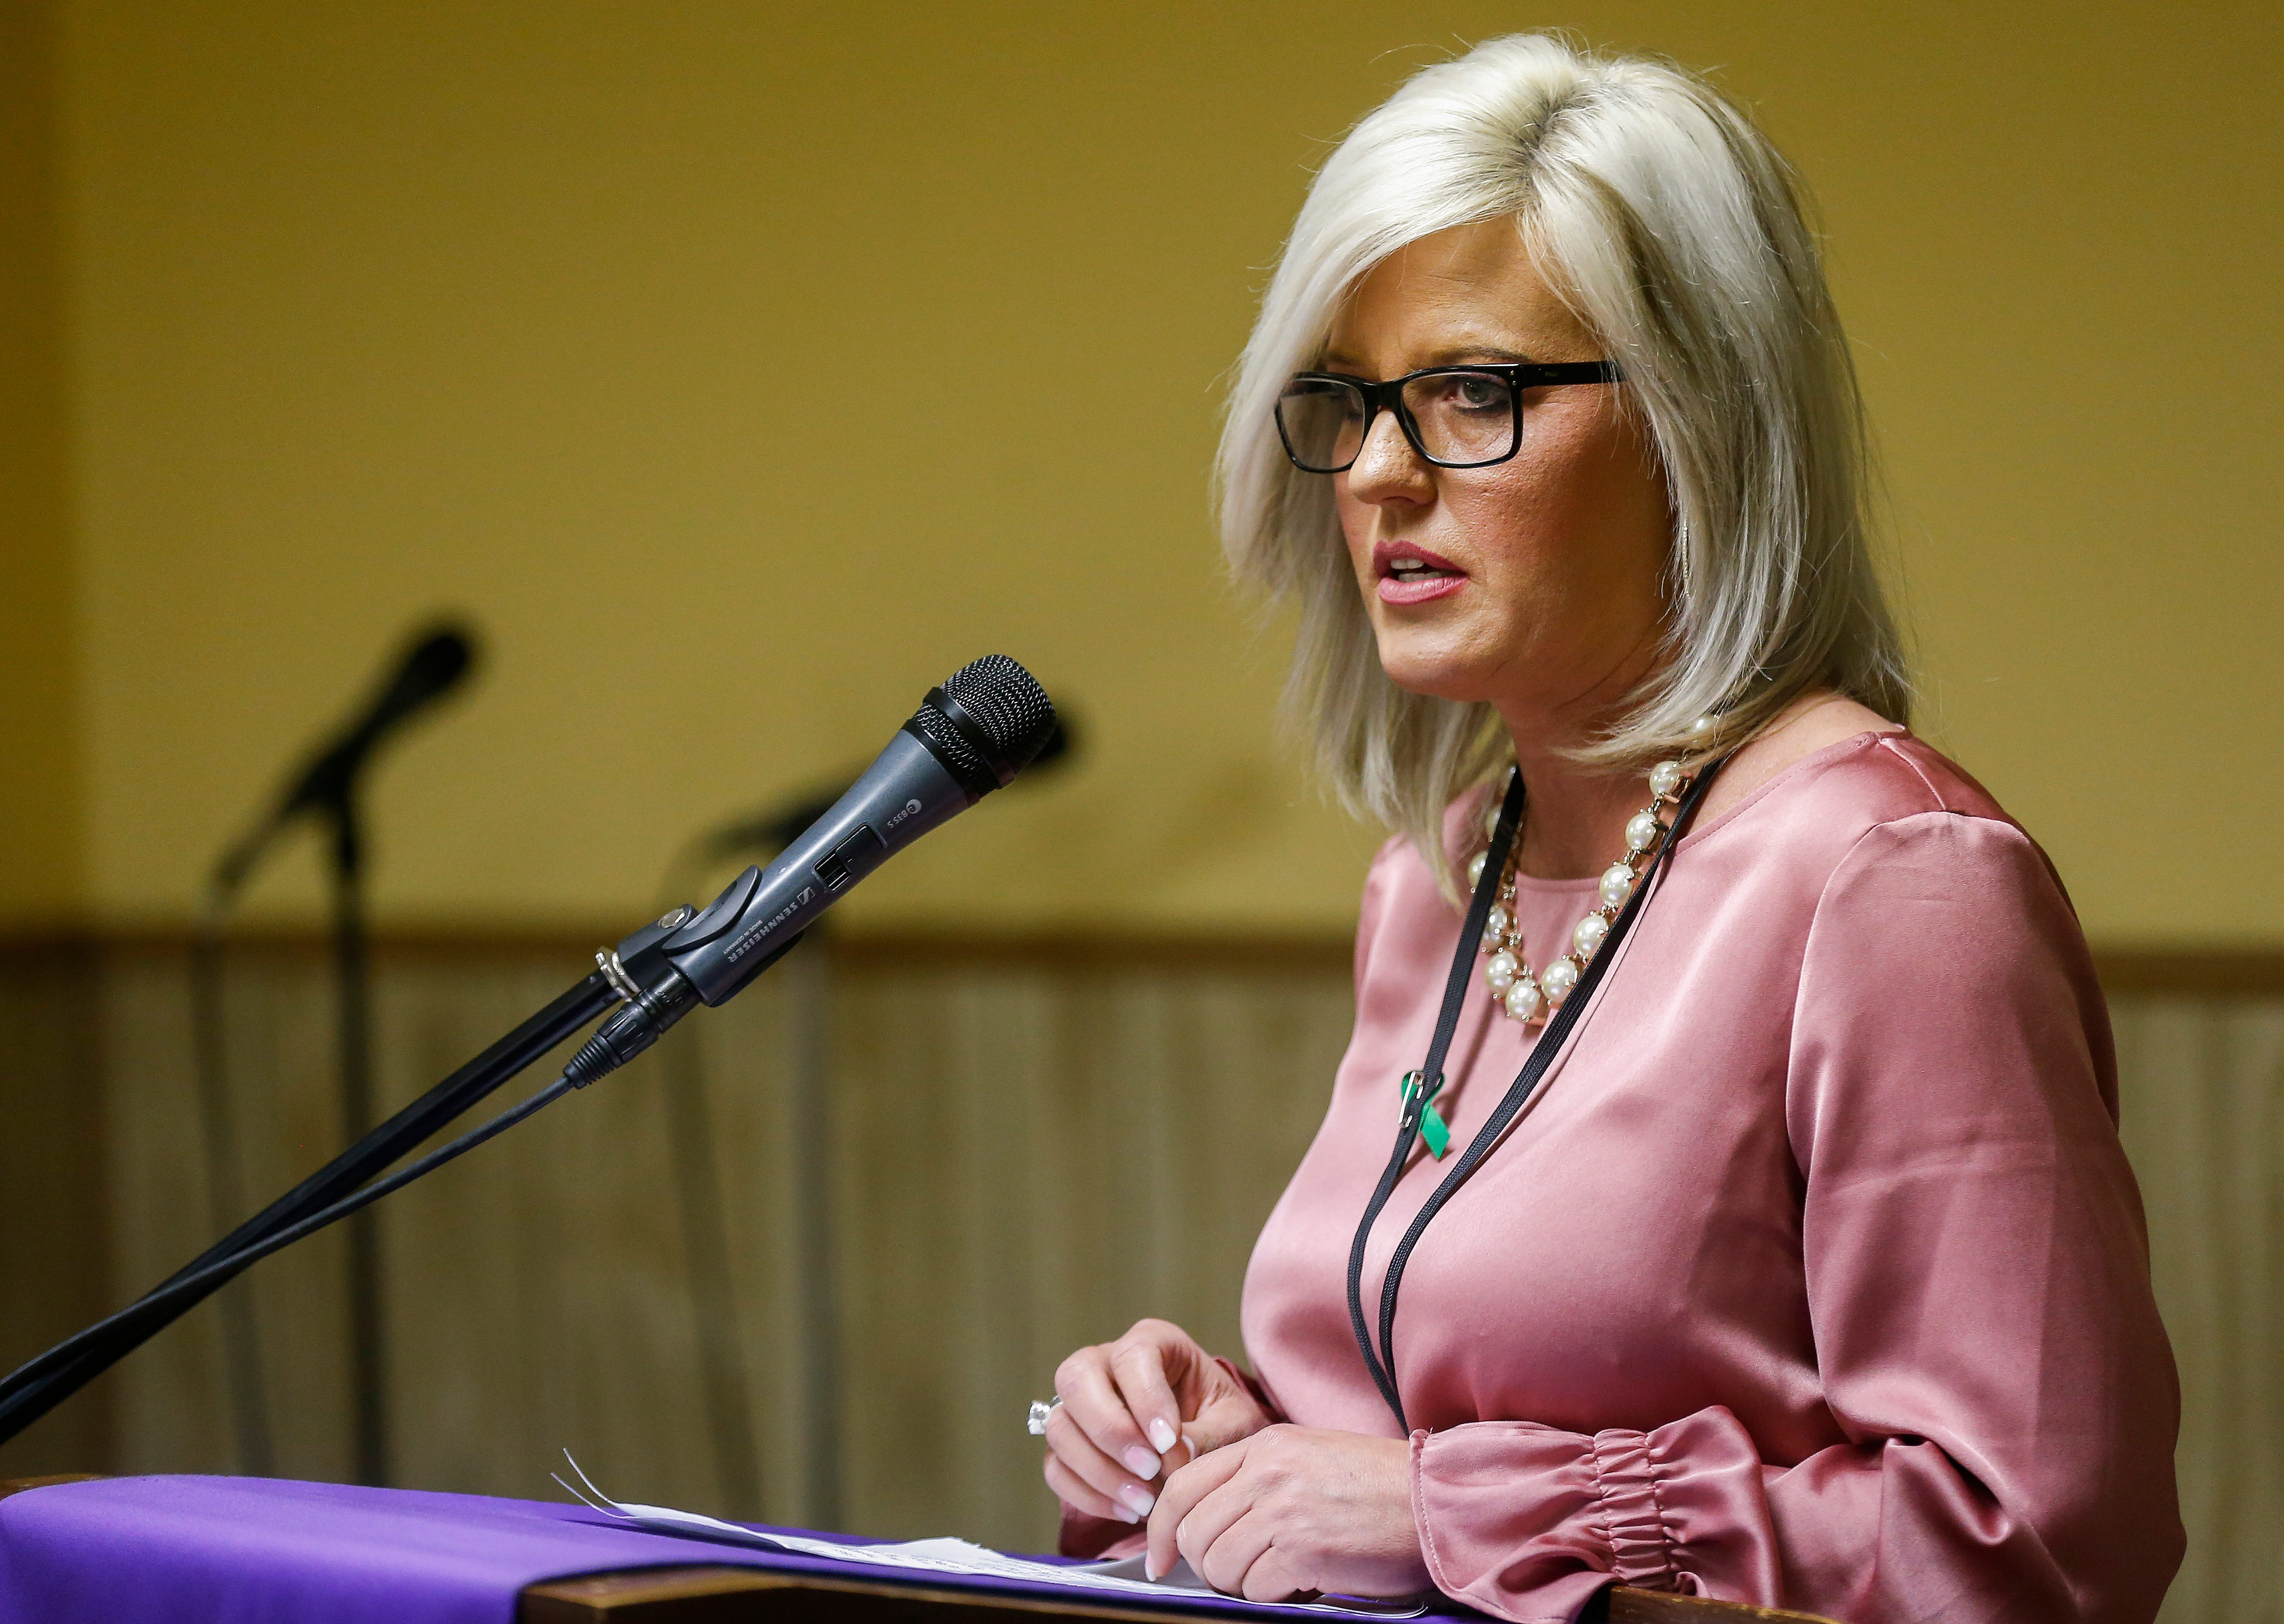 Stephanie Appleby, of NAMI, speaks during a press conference at Pitts Chapel United Methodist Church on Wednesday, March 20, 2019.